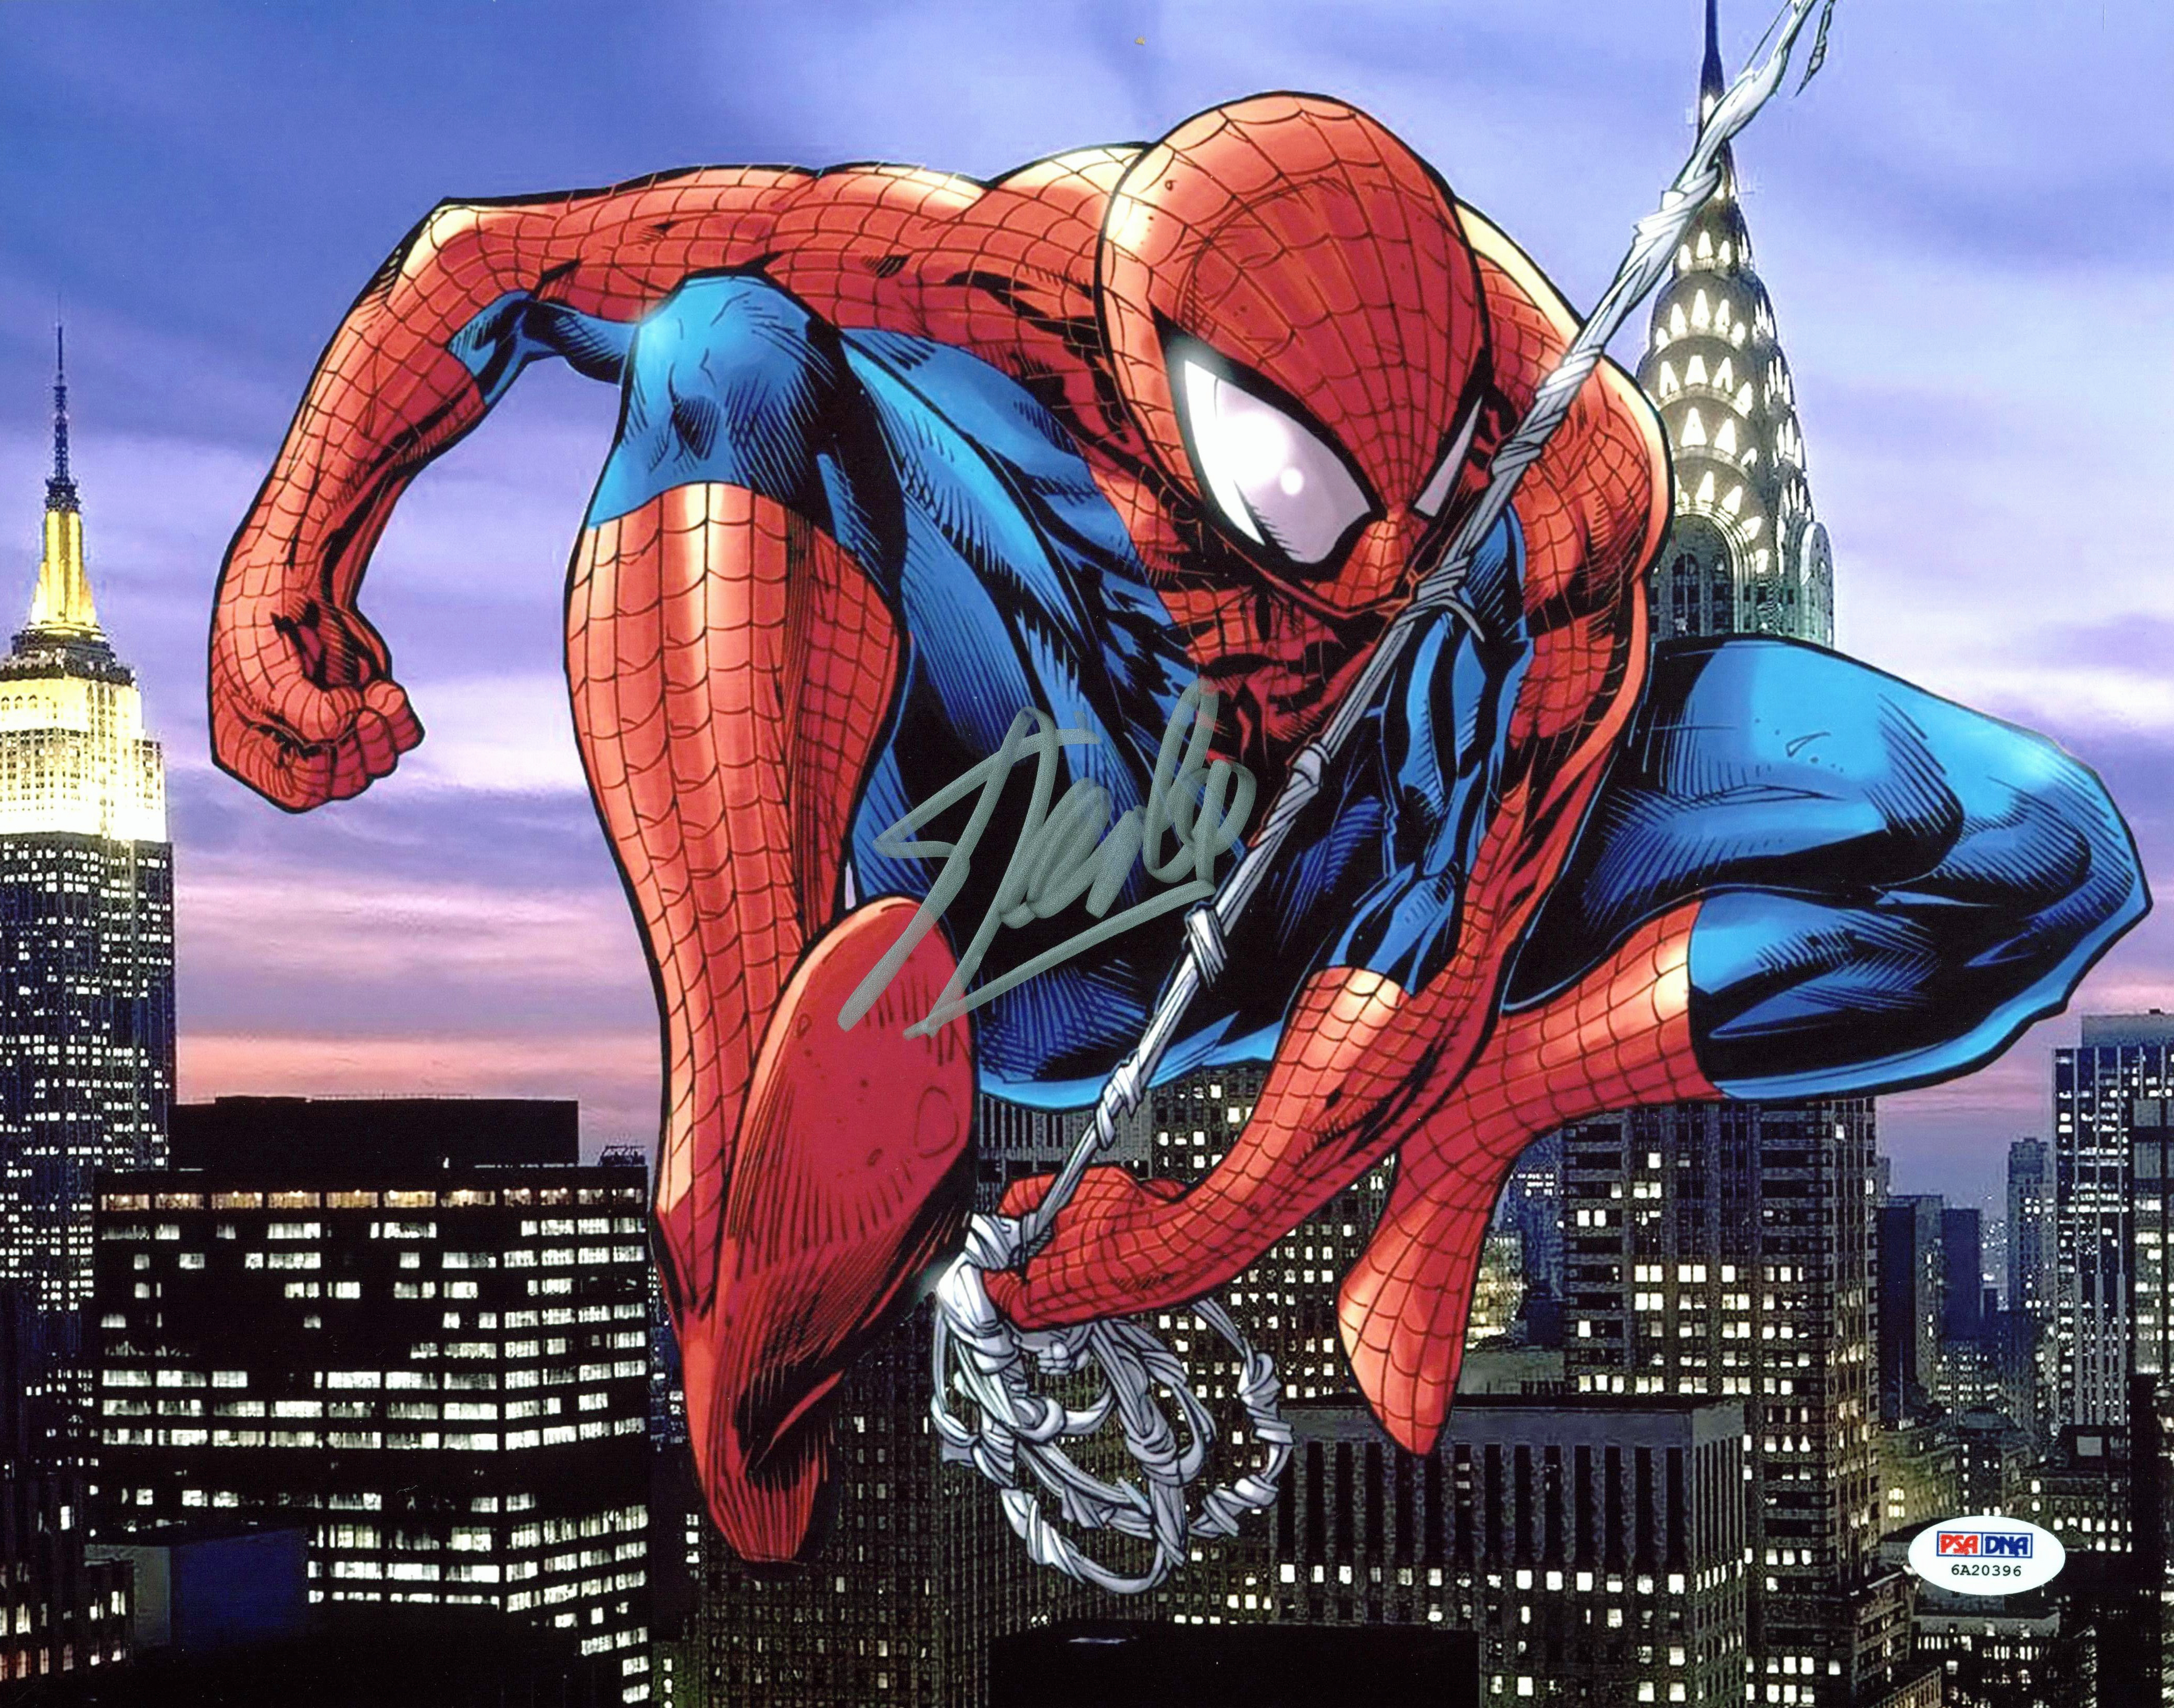 Stan Lee The Amazing Spider-Man Authentic Signed 11x14 Photo PSA/DNA Itp 6A20396